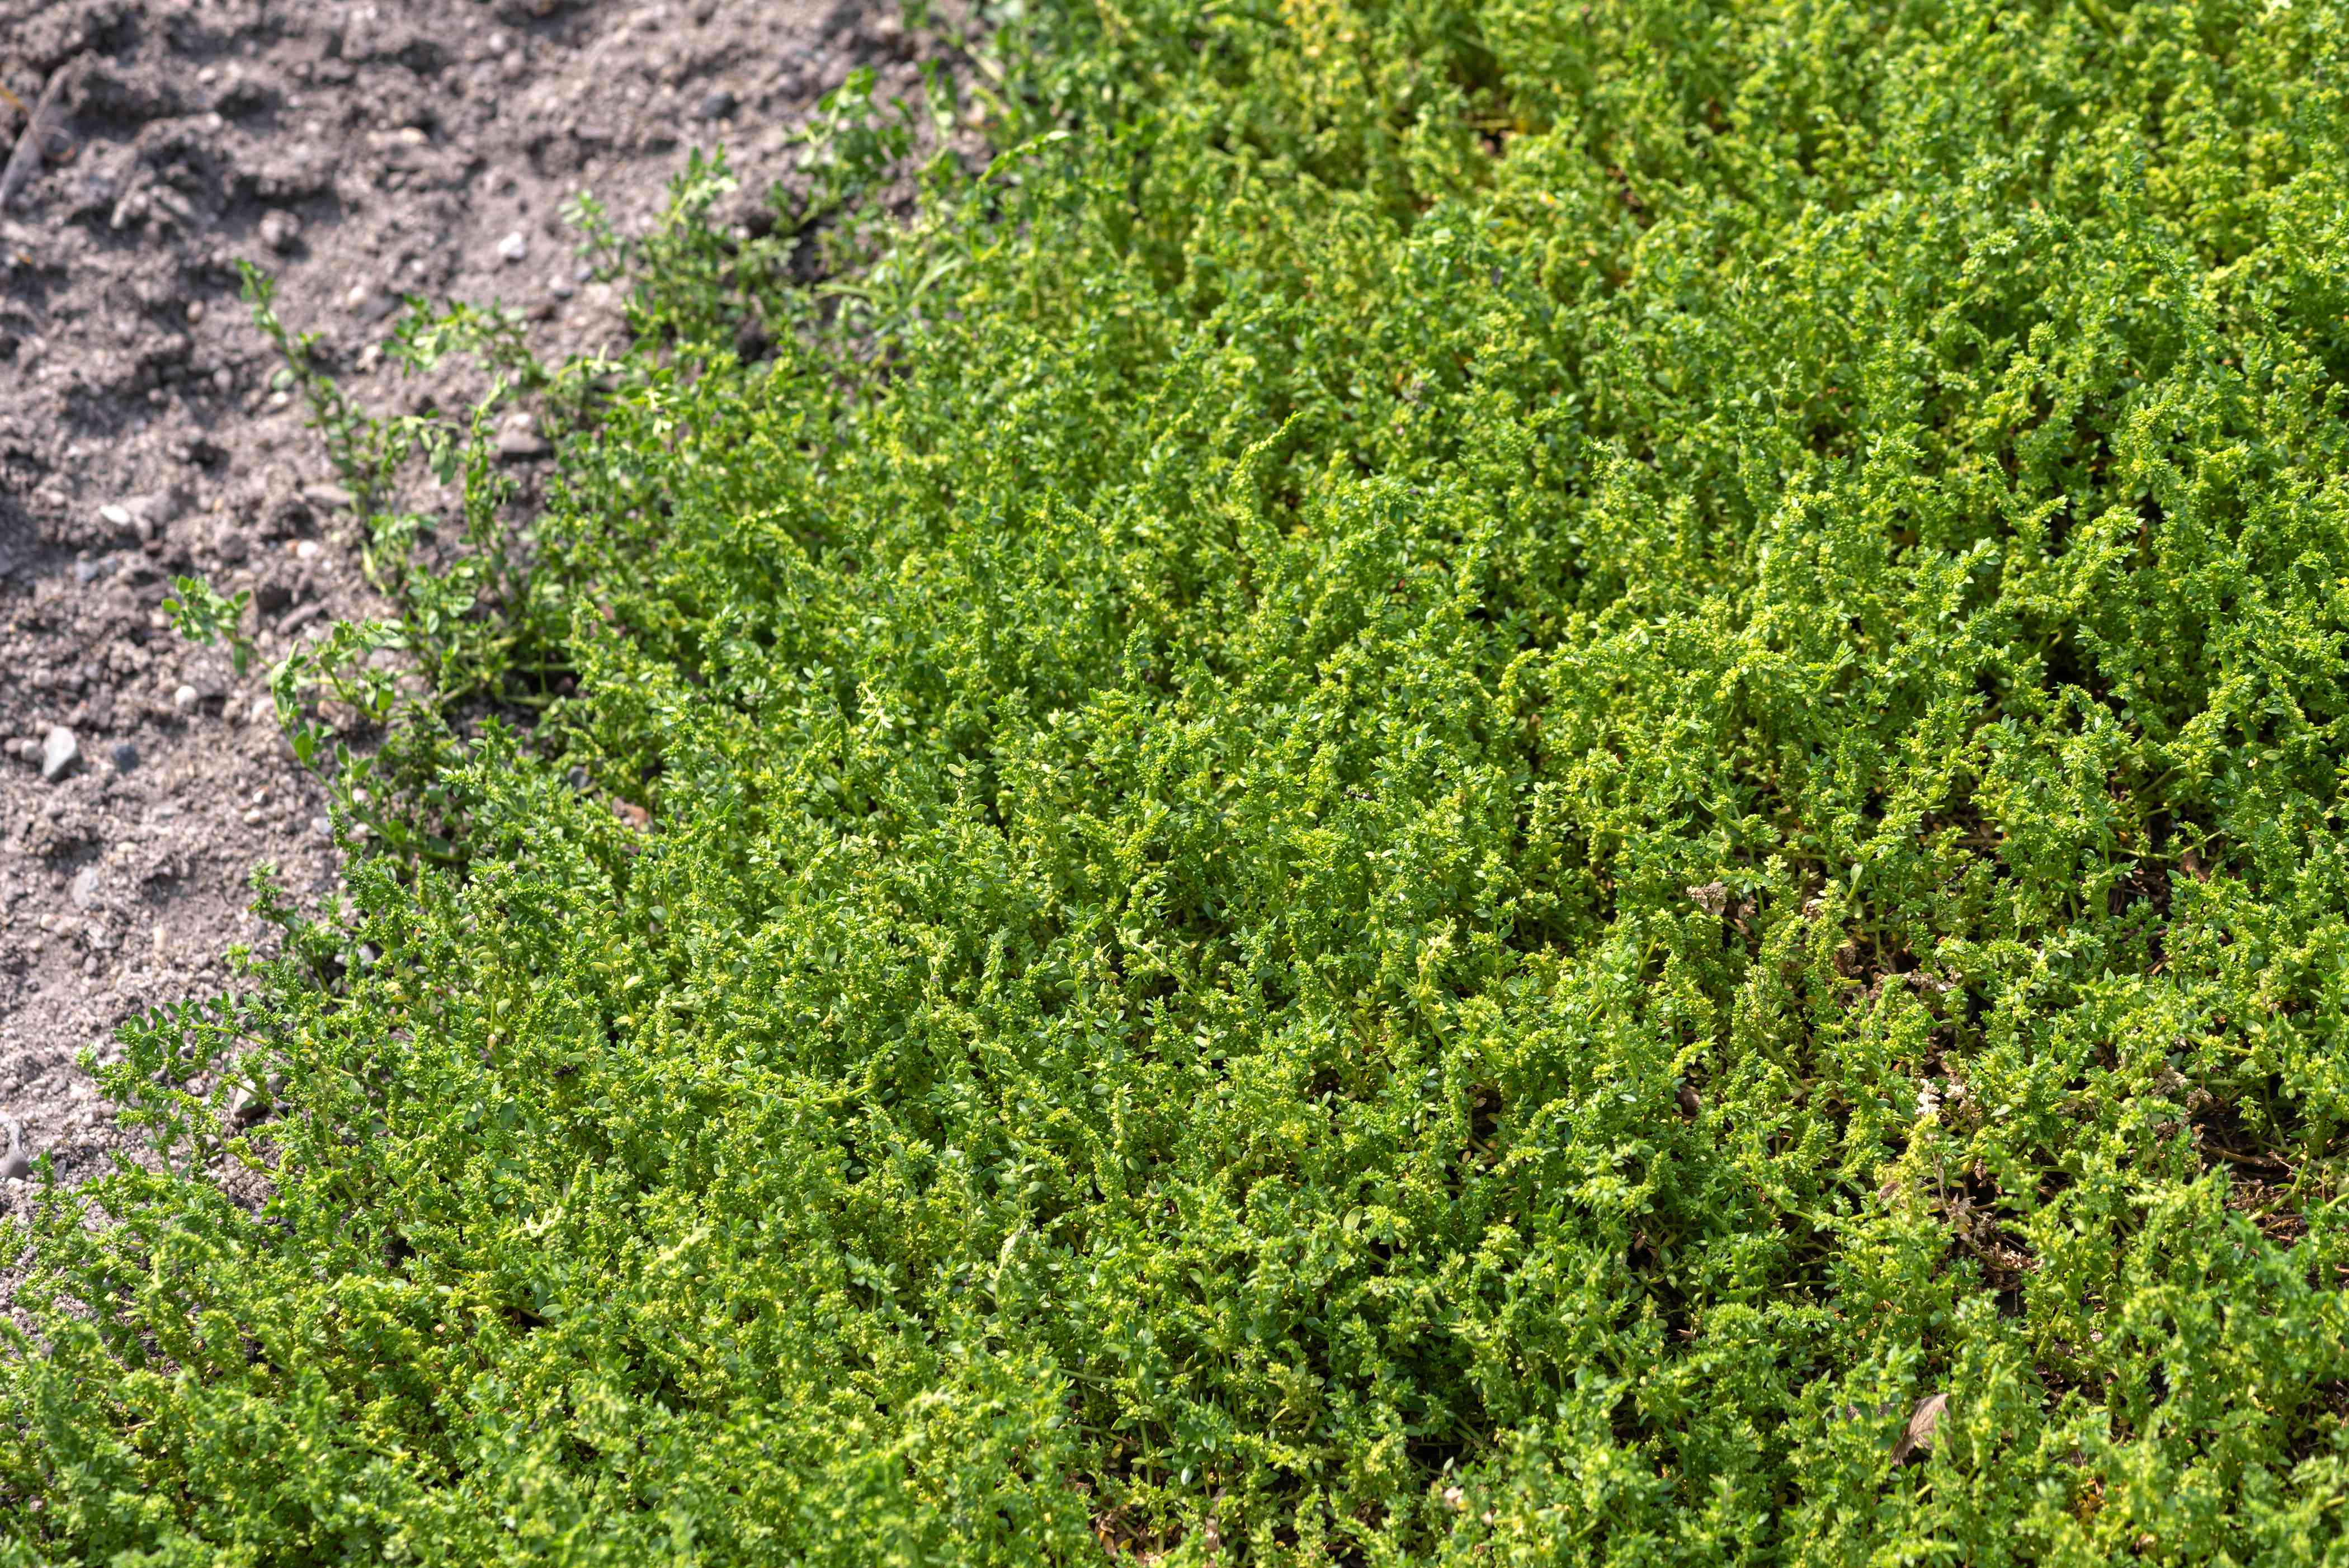 Rupturewort ground cover with bright green dense foliage next to soil